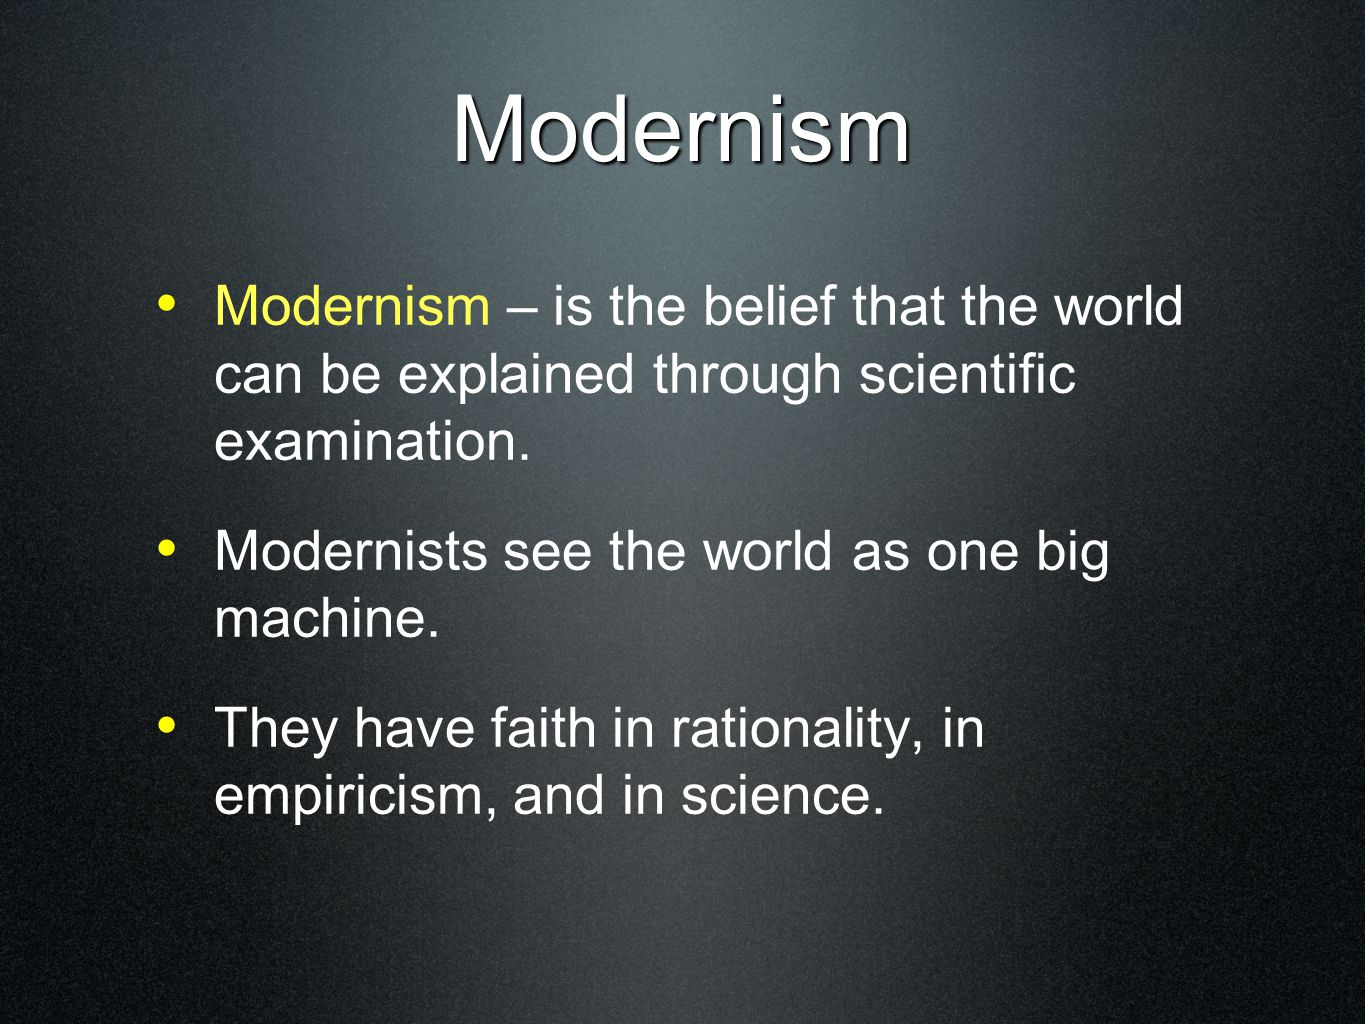 Modernism Modernism – is the belief that the world can be explained through scientific examination.